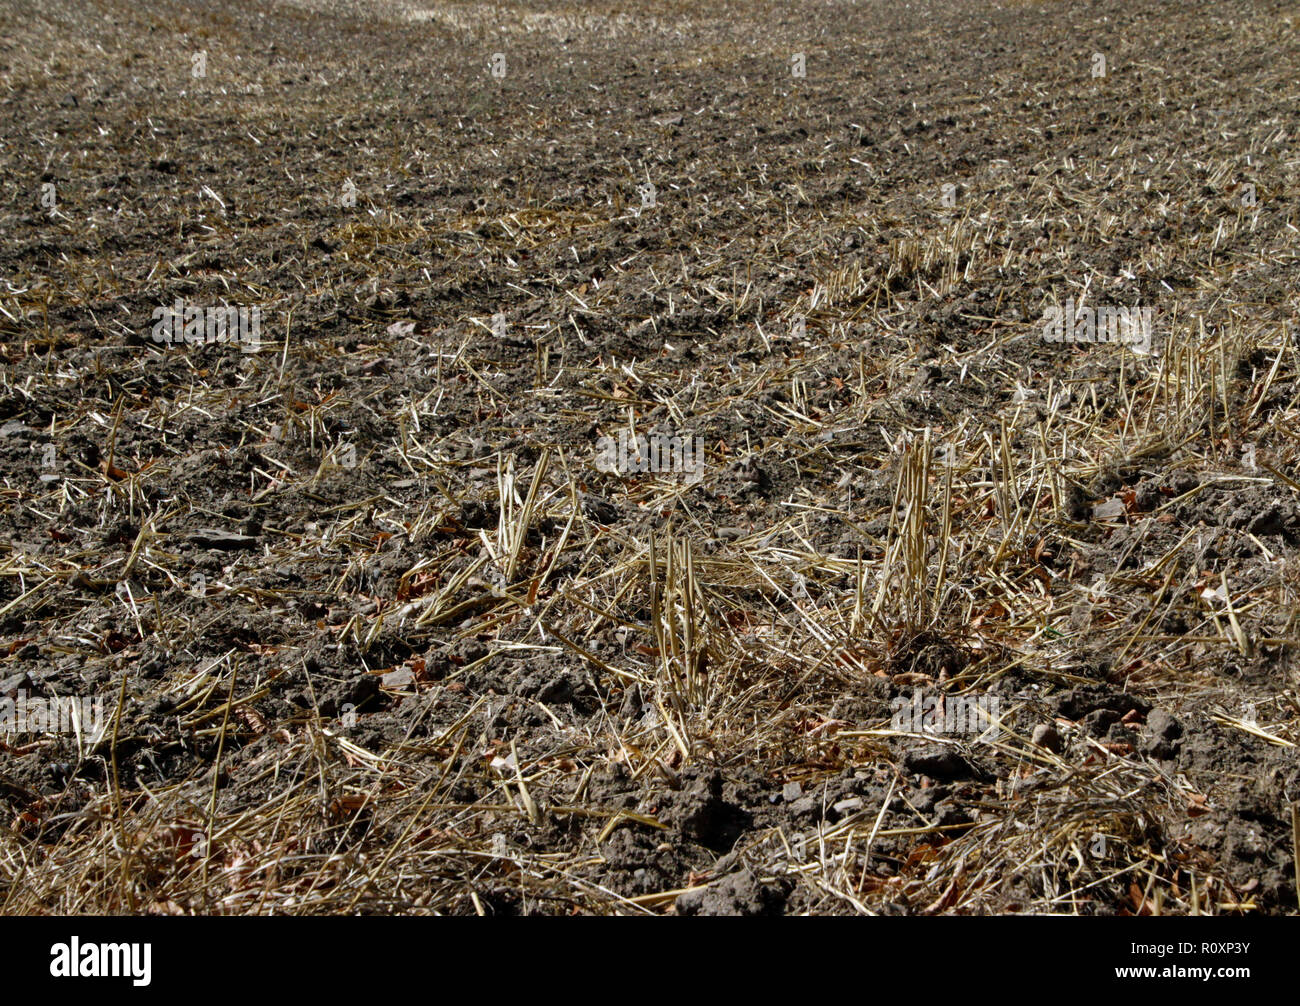 Dried up wheat field after heat wave in Europe - Stock Image